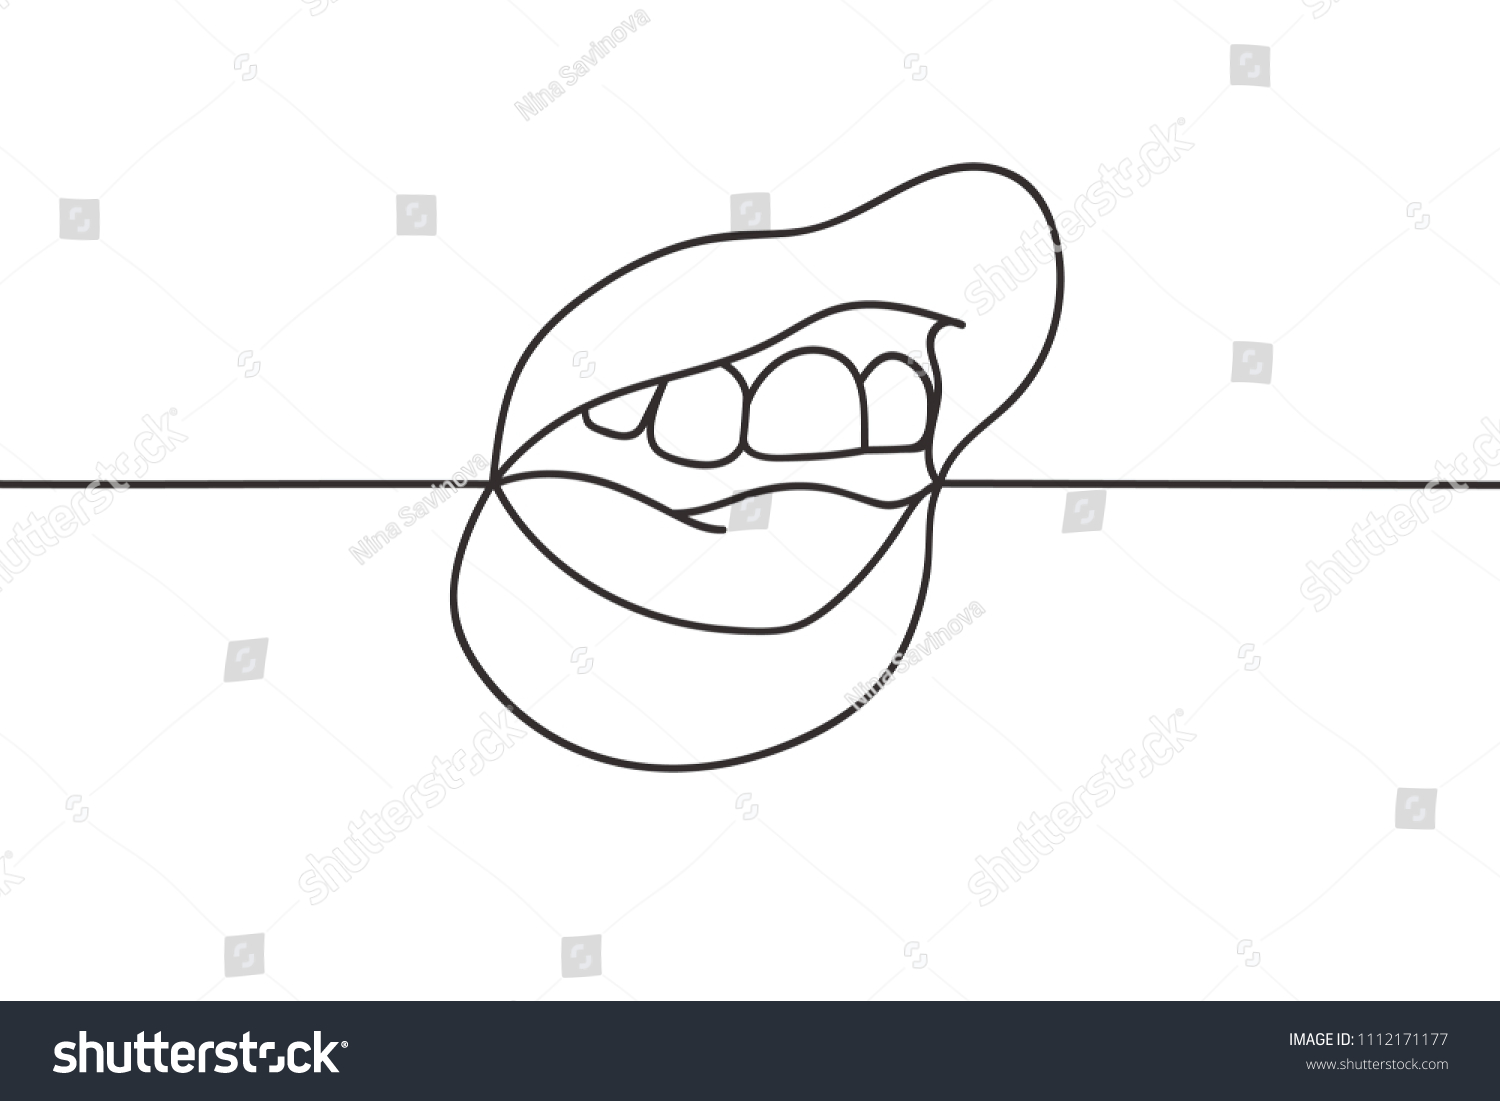 Beautiful Continuous Line Sexy Lips Art Stock Vector Royalty Free 1112171177